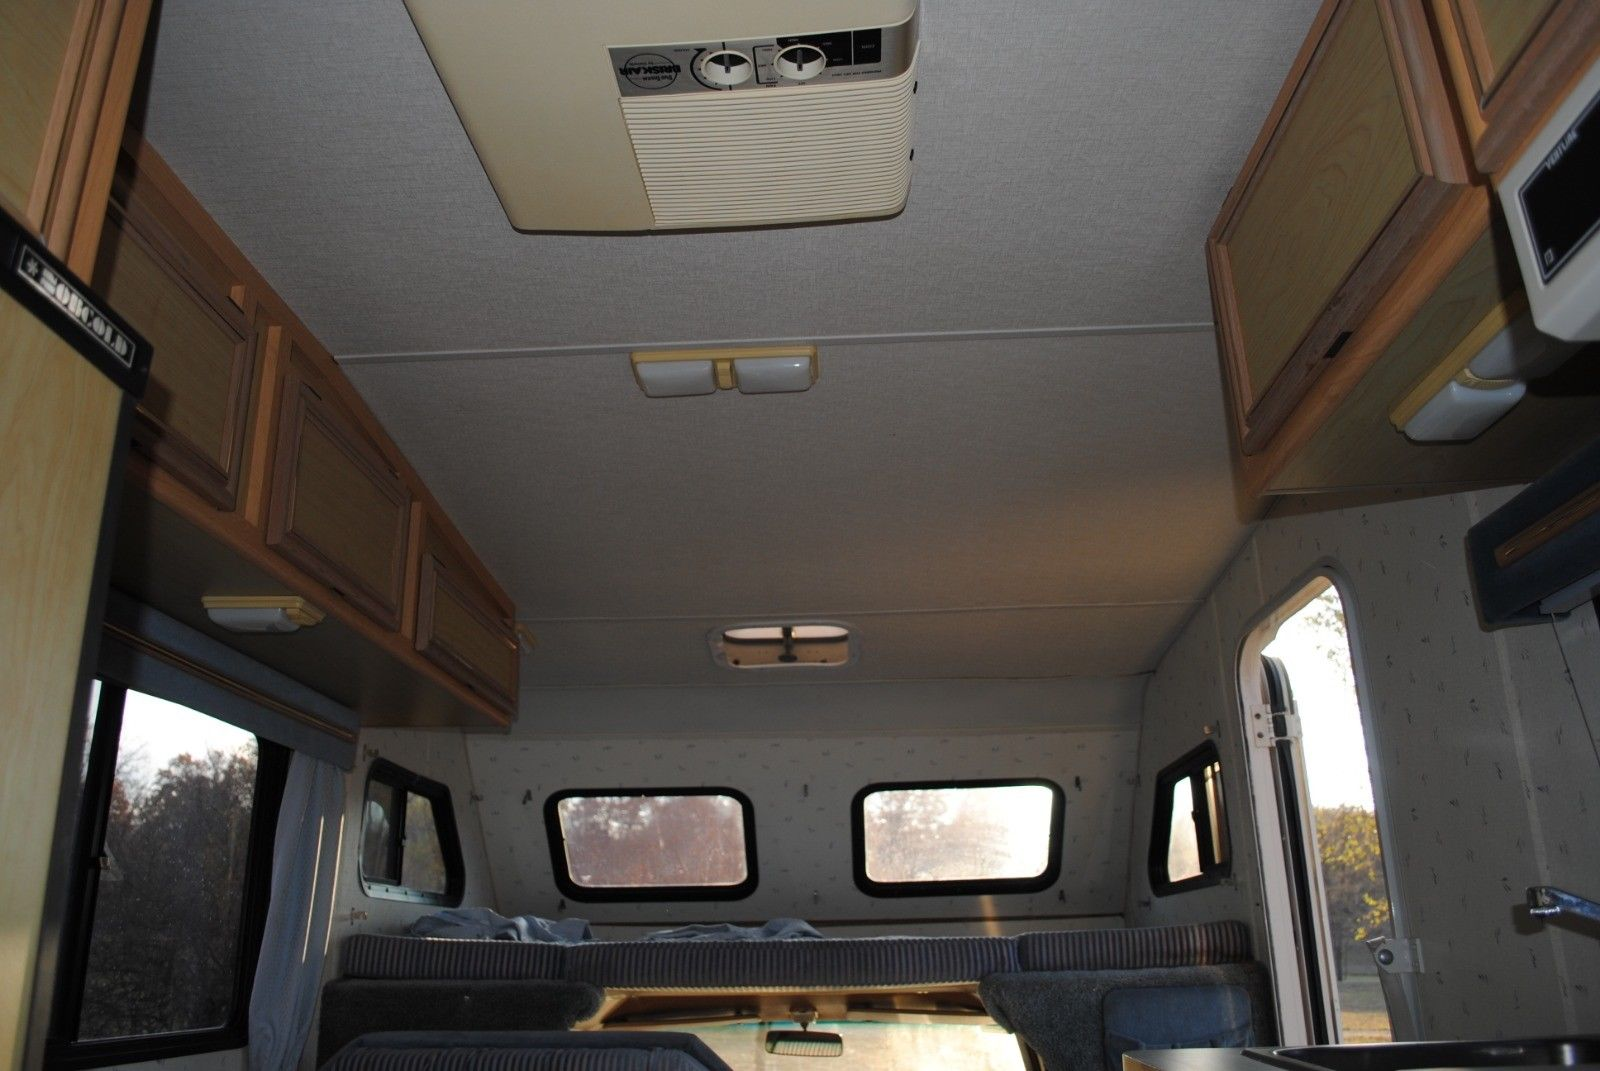 1990 TOYOTA WINNEBAGO MICRO RV WARRIOR $2,200